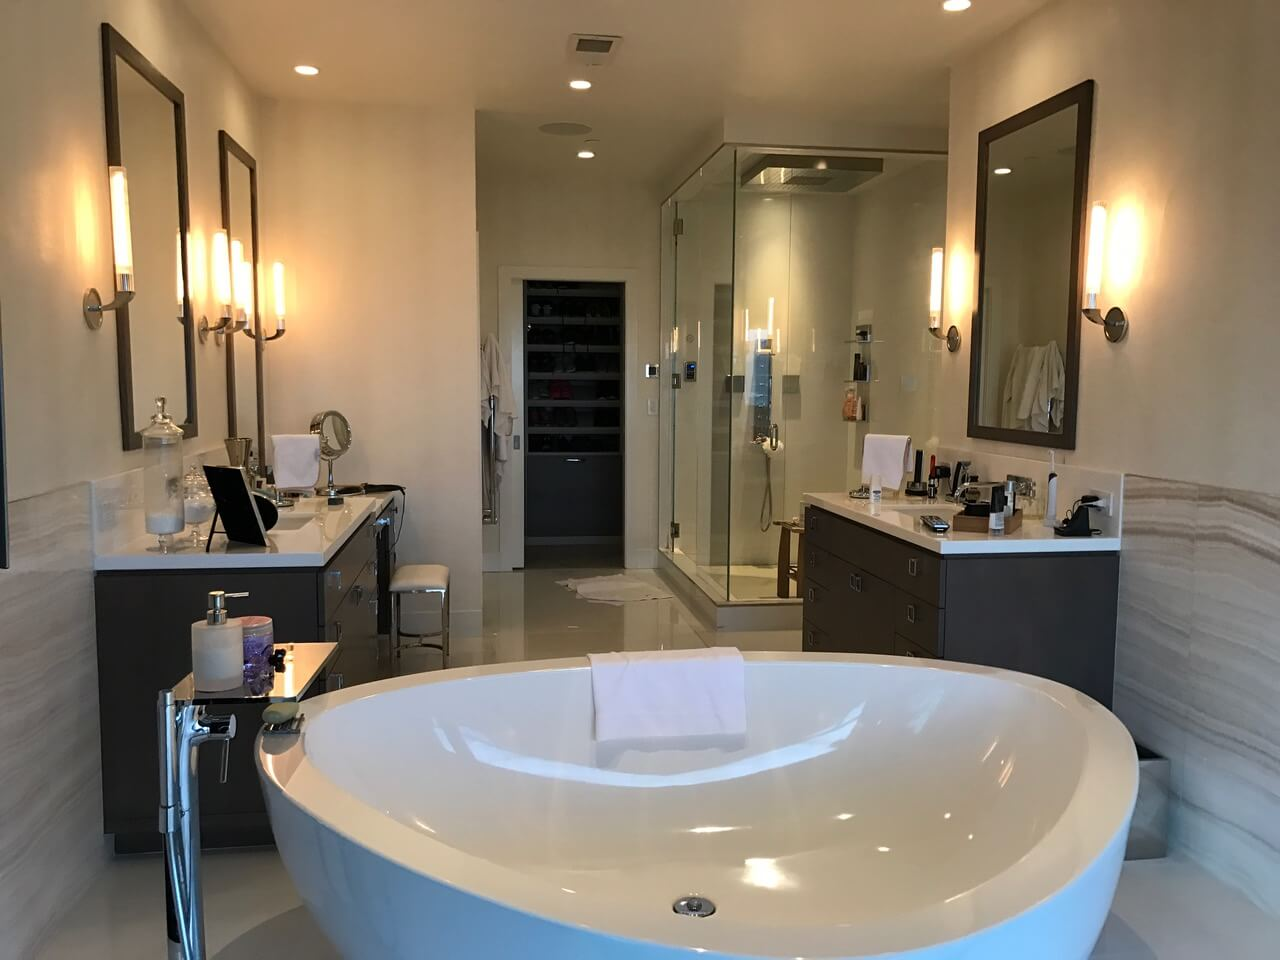 Deluxe bathroom with free standing bathtub and multiple fixtures shower